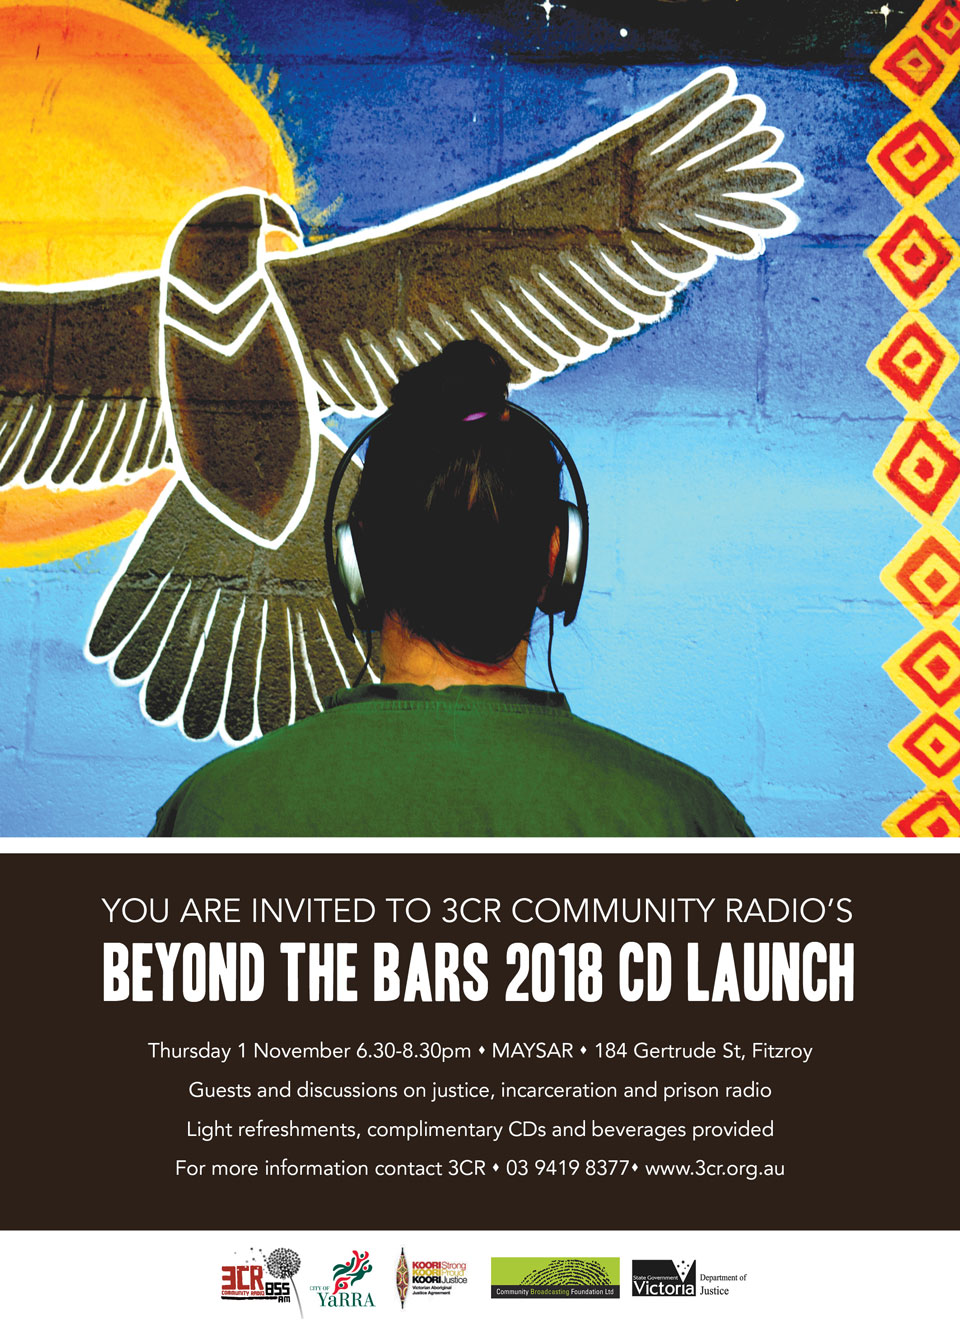 Beyond the Bars 2018 CD launch invitation